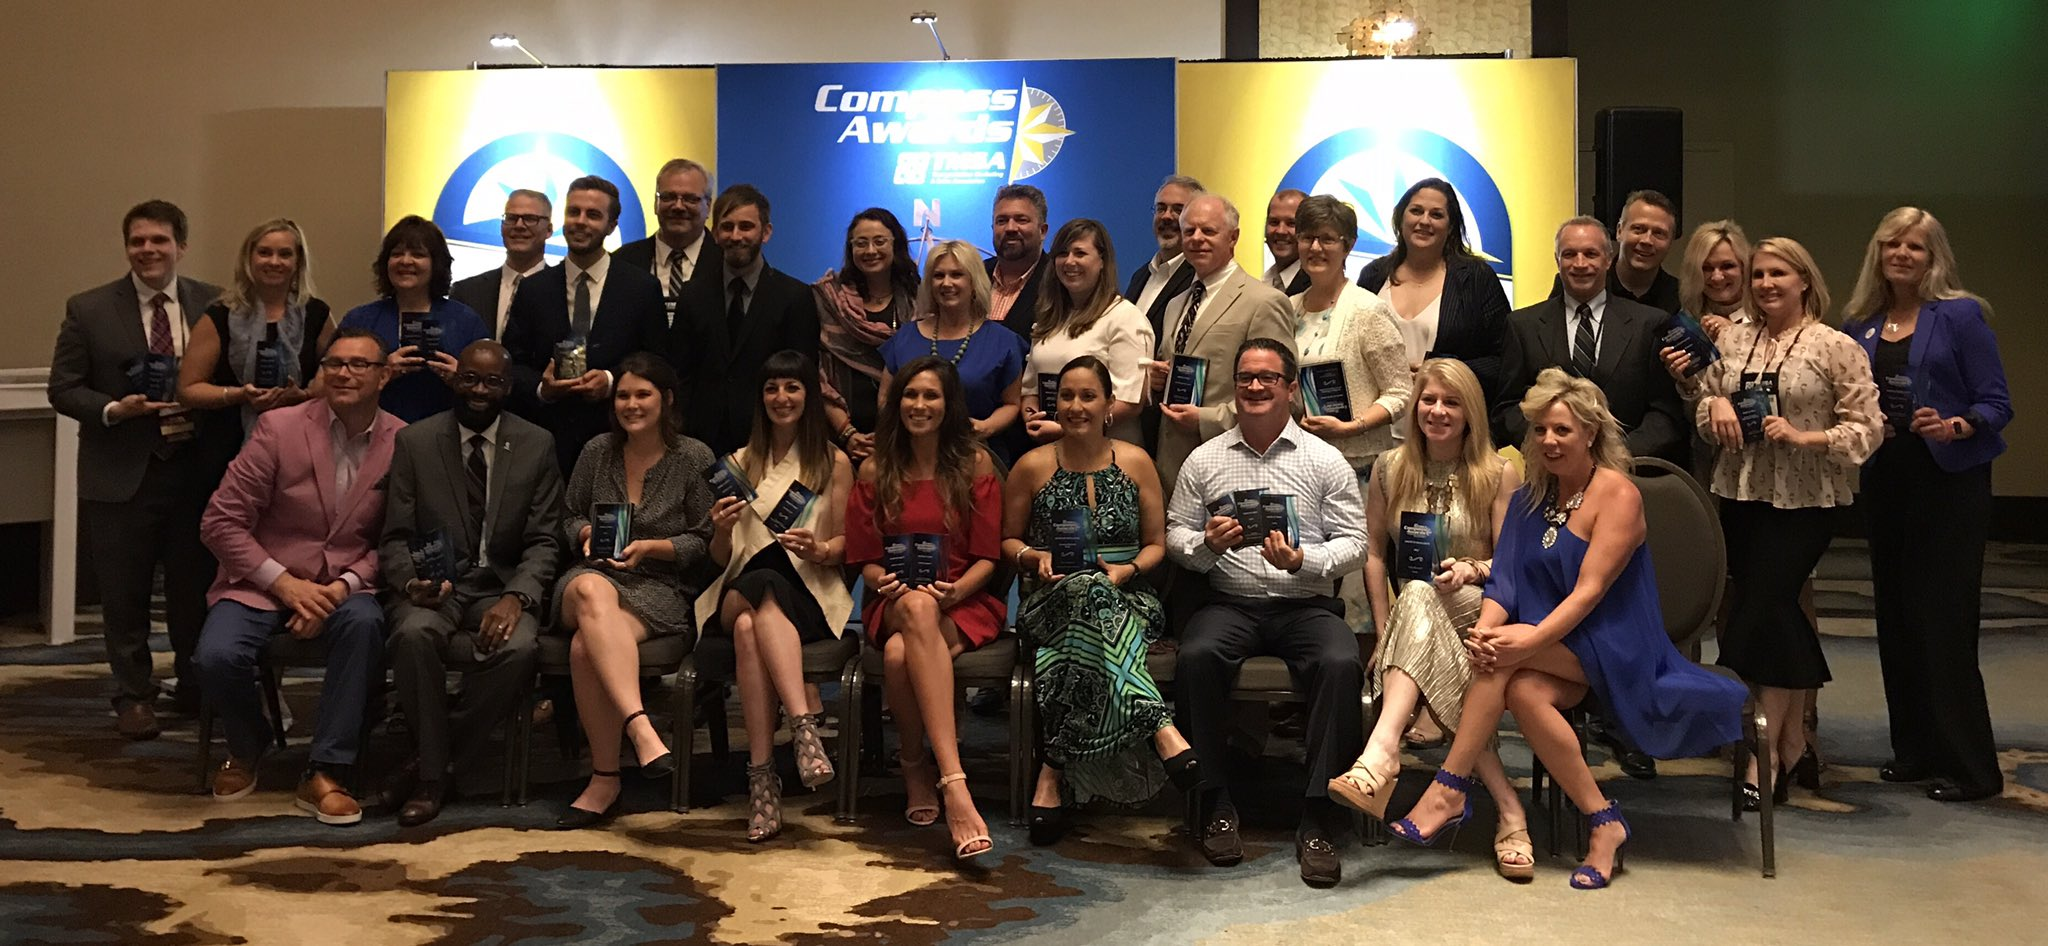 2017 Compass Award winners